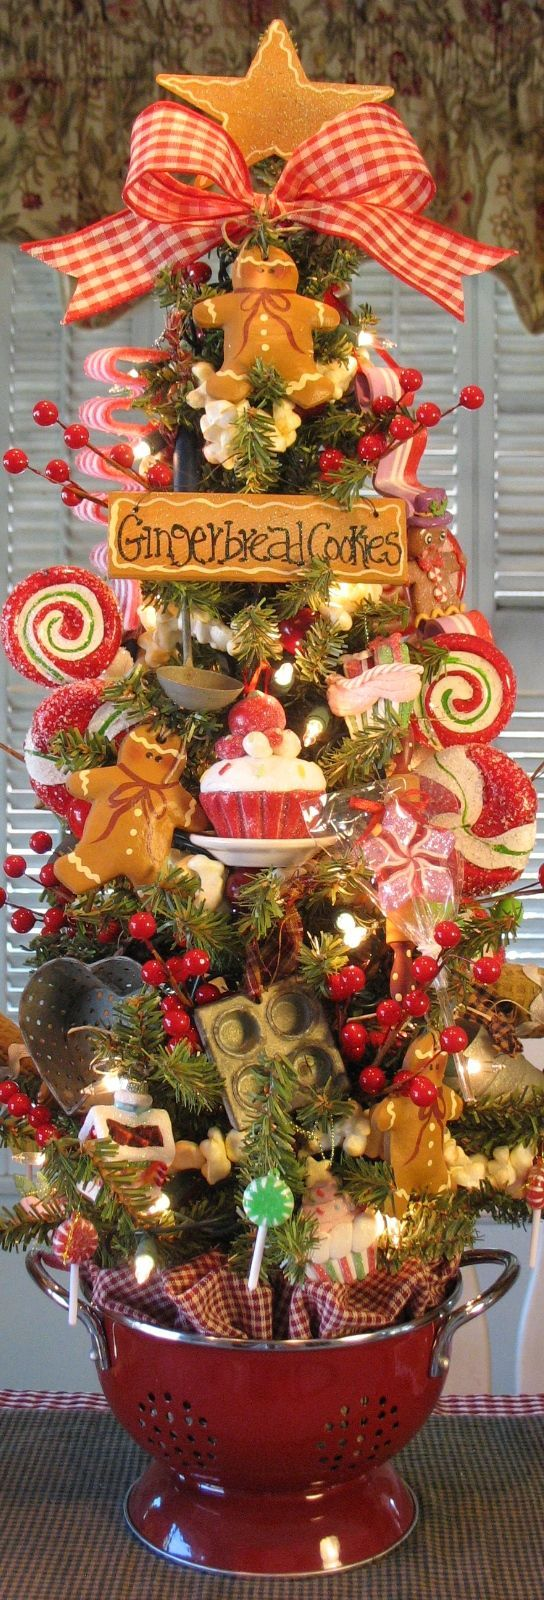 Gingerbread, sweets, cupcakes and popcorn garland Kitchen Tree.